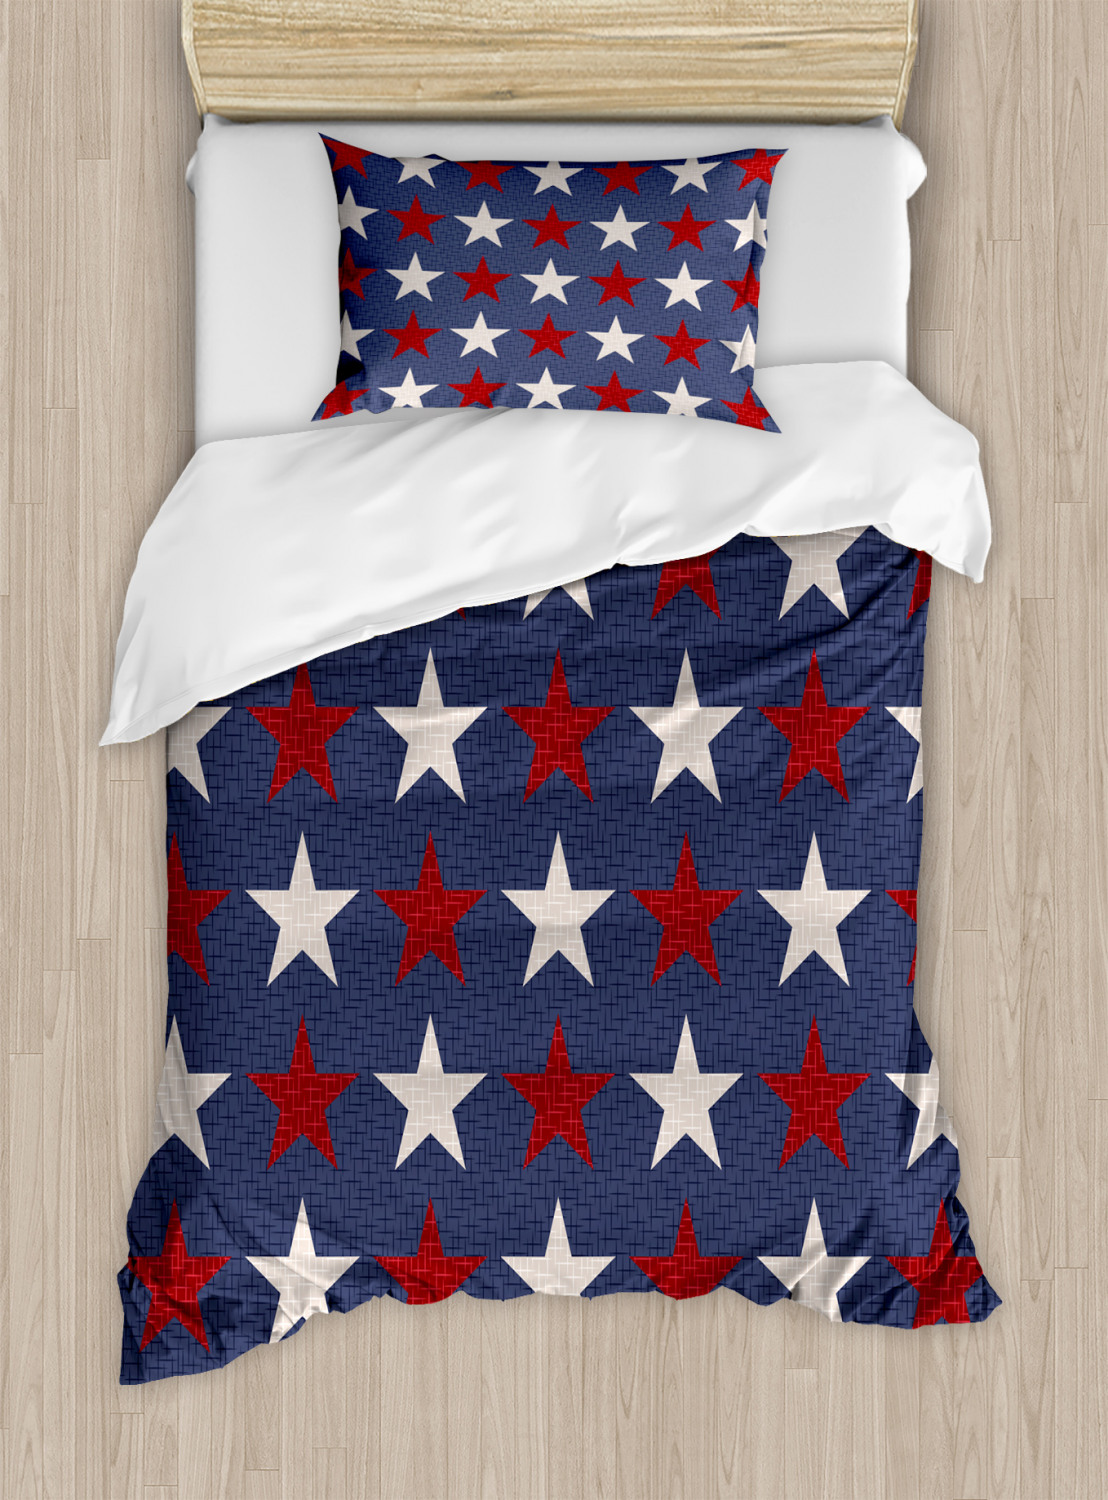 Primitive-Country-Duvet-Cover-Set-with-Pillow-Shams-US-Freedom-Print thumbnail 6